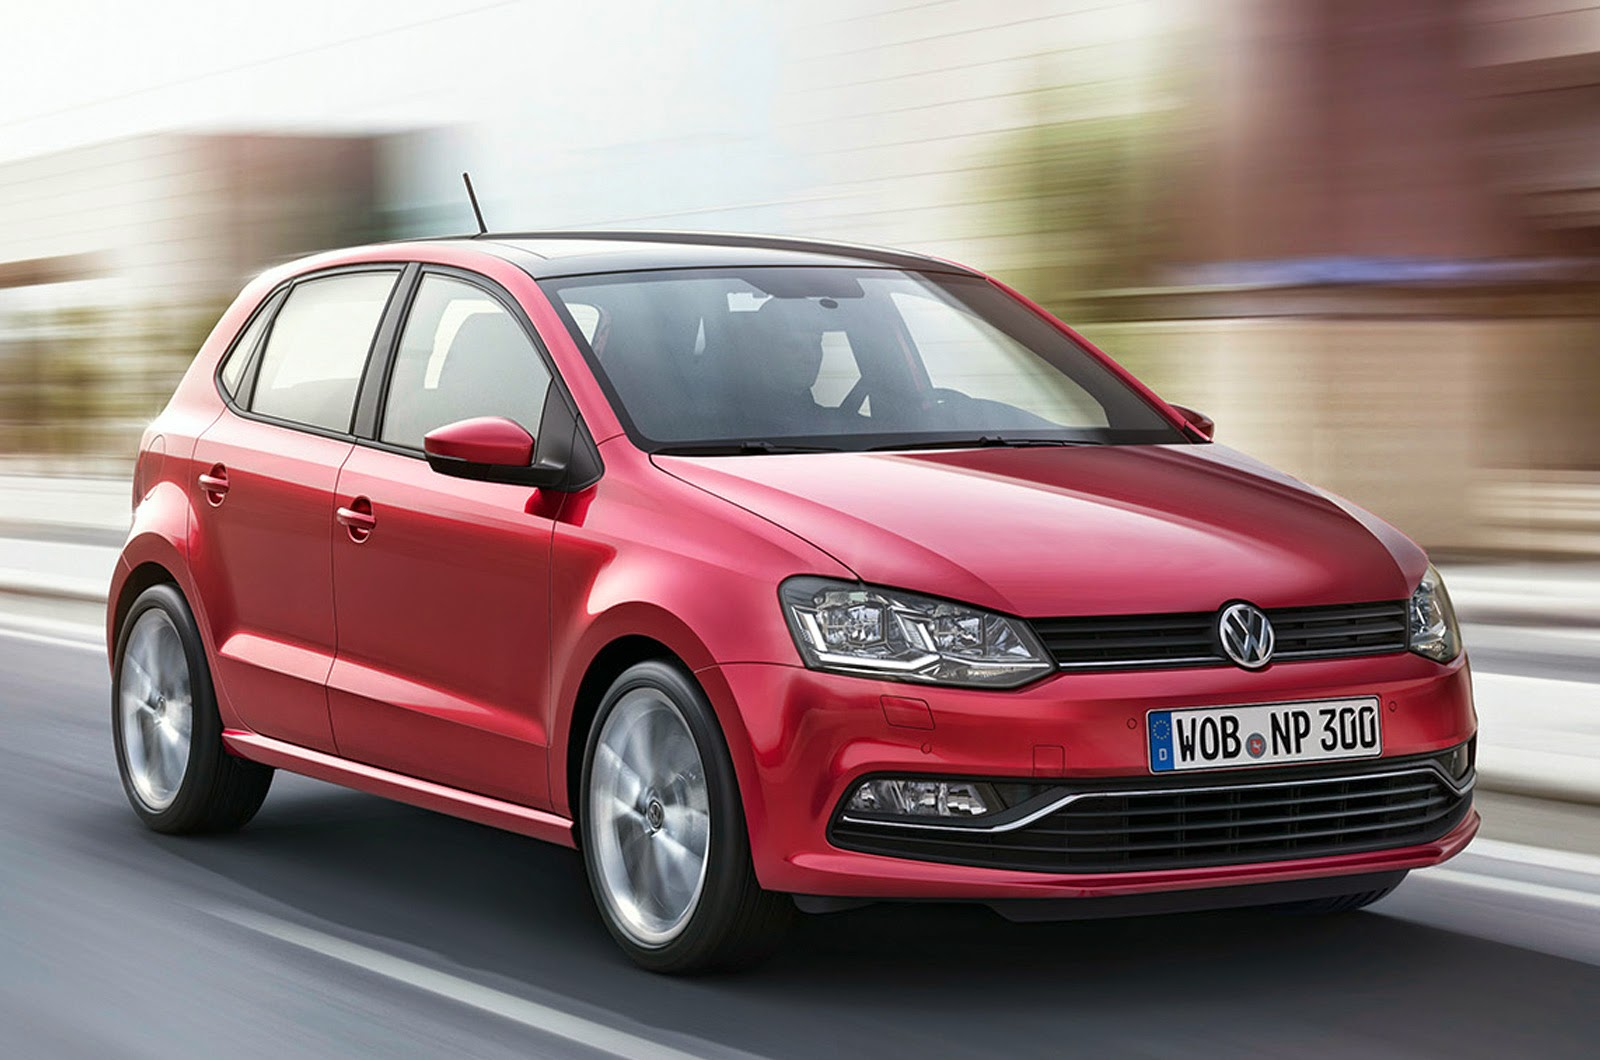 Volkswagen polo facelift HD Wallpaper